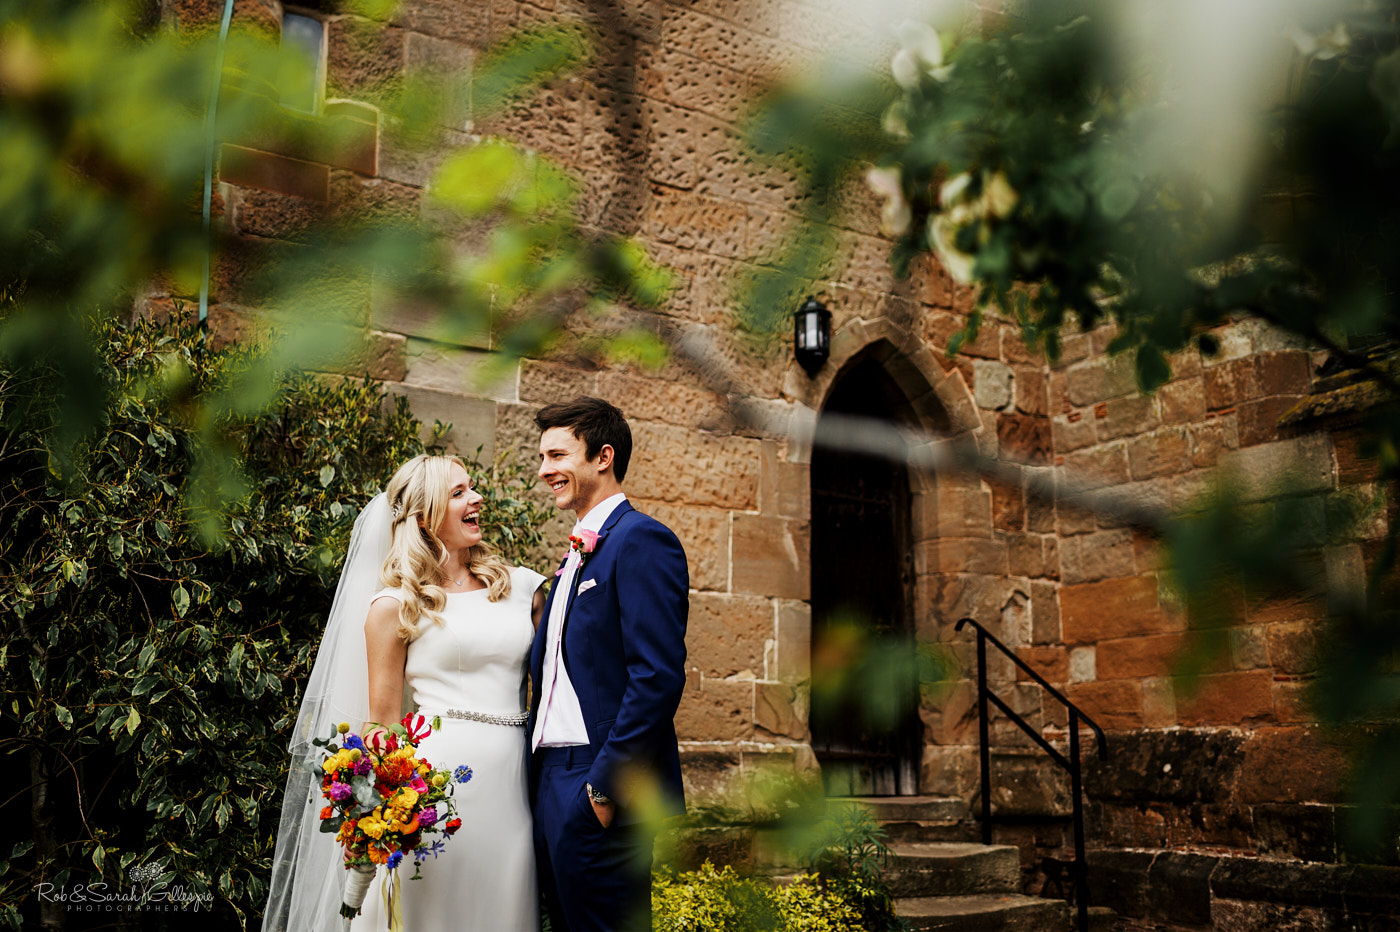 Bride and groomn laugh together after wedding at St Leonard's church Clent